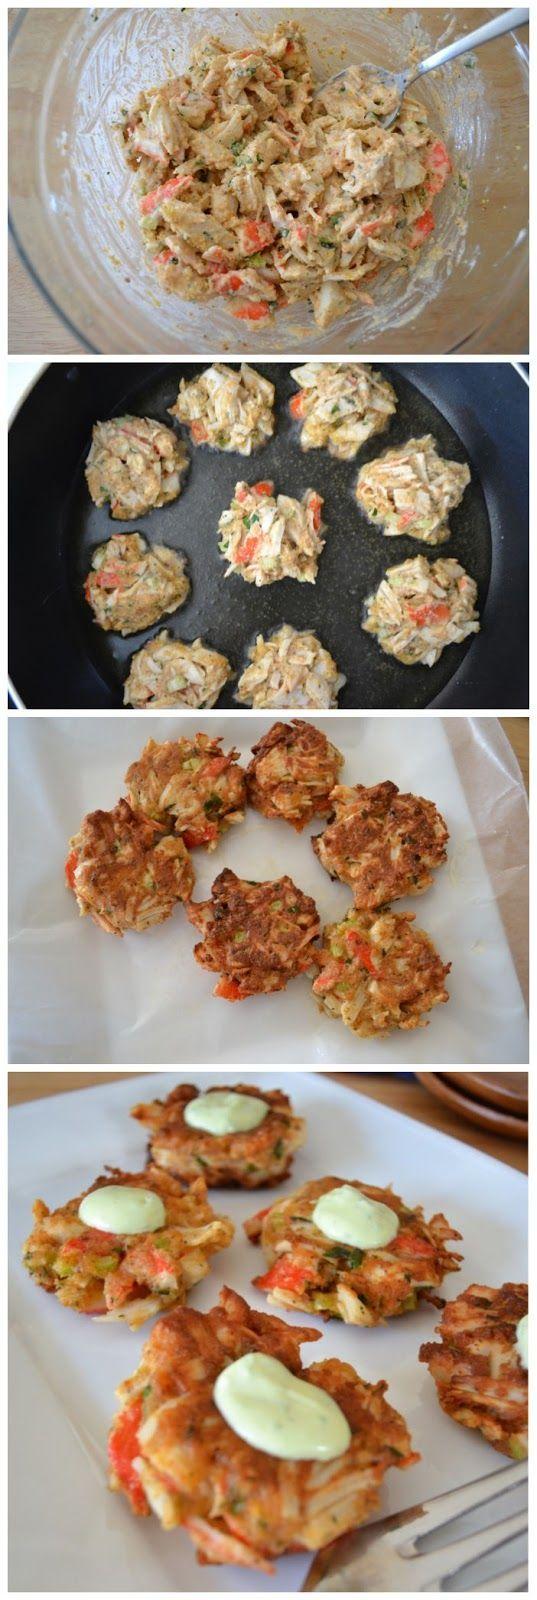 Latest Food: Gluten Free Crab Cakes - Incredibly easy delicious